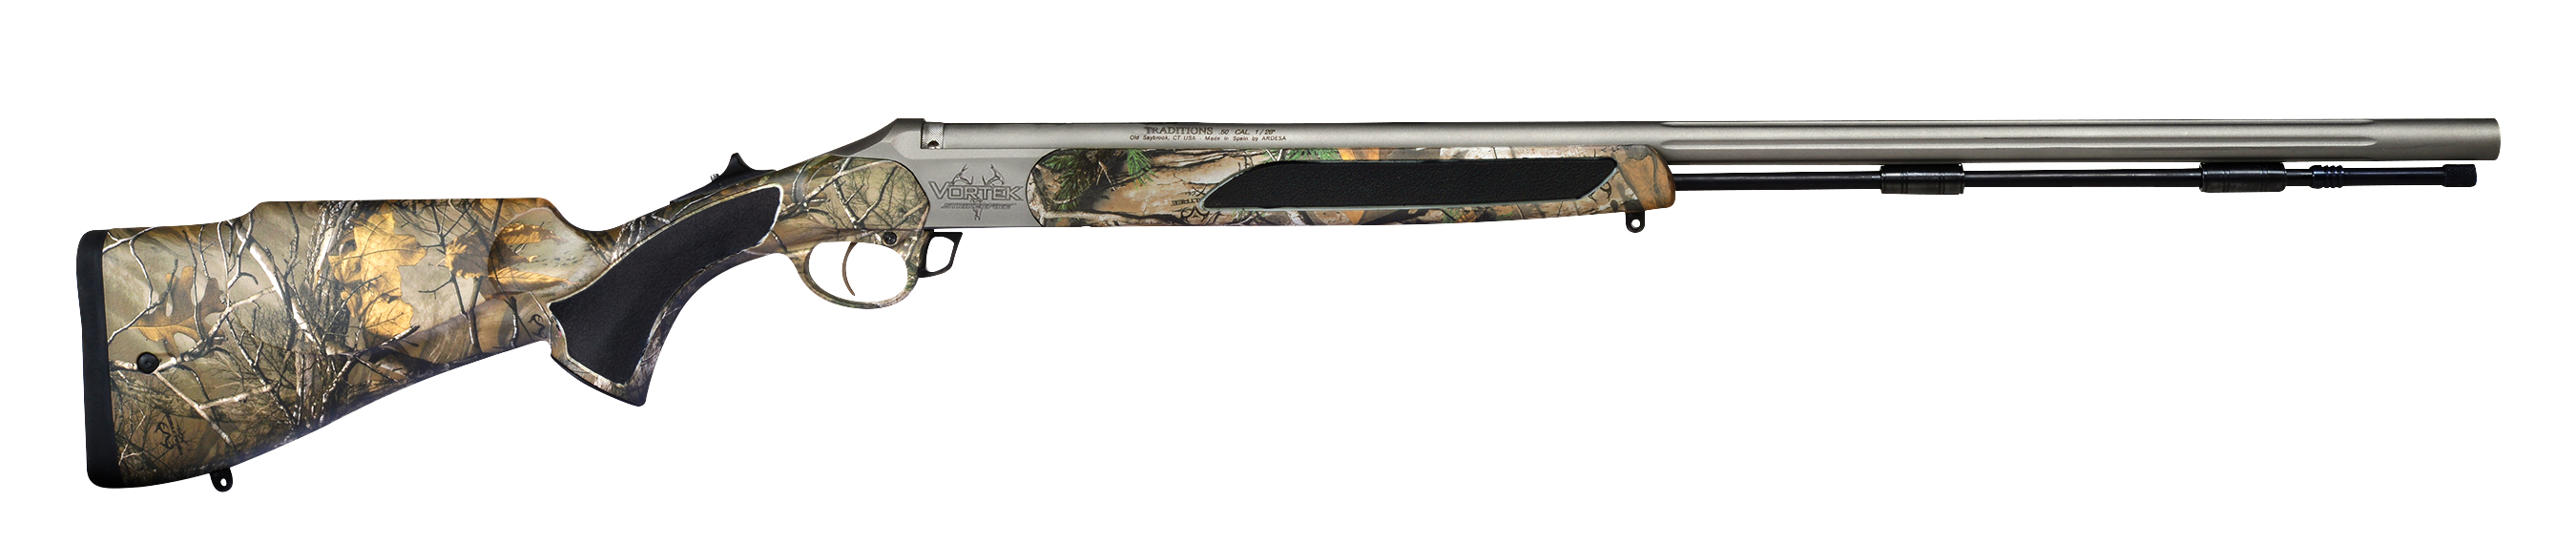 Traditions Vortek StrikerFire™ .50 cal Realtree Xtra/Cerakote -  R561146NS